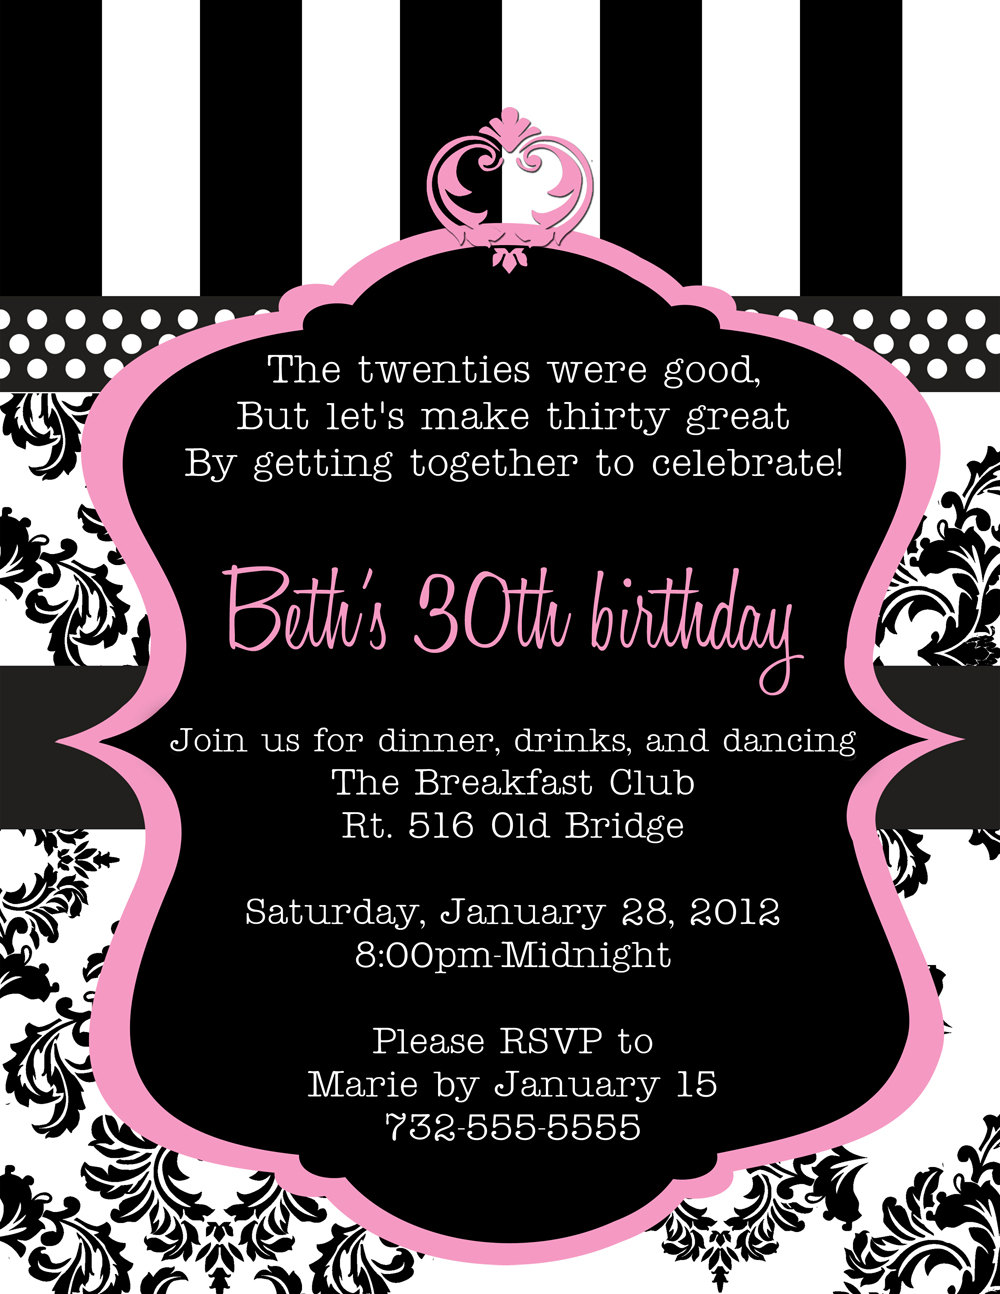 30th birthday invitations with photo ; 30th-birthday-invitations-templates-free